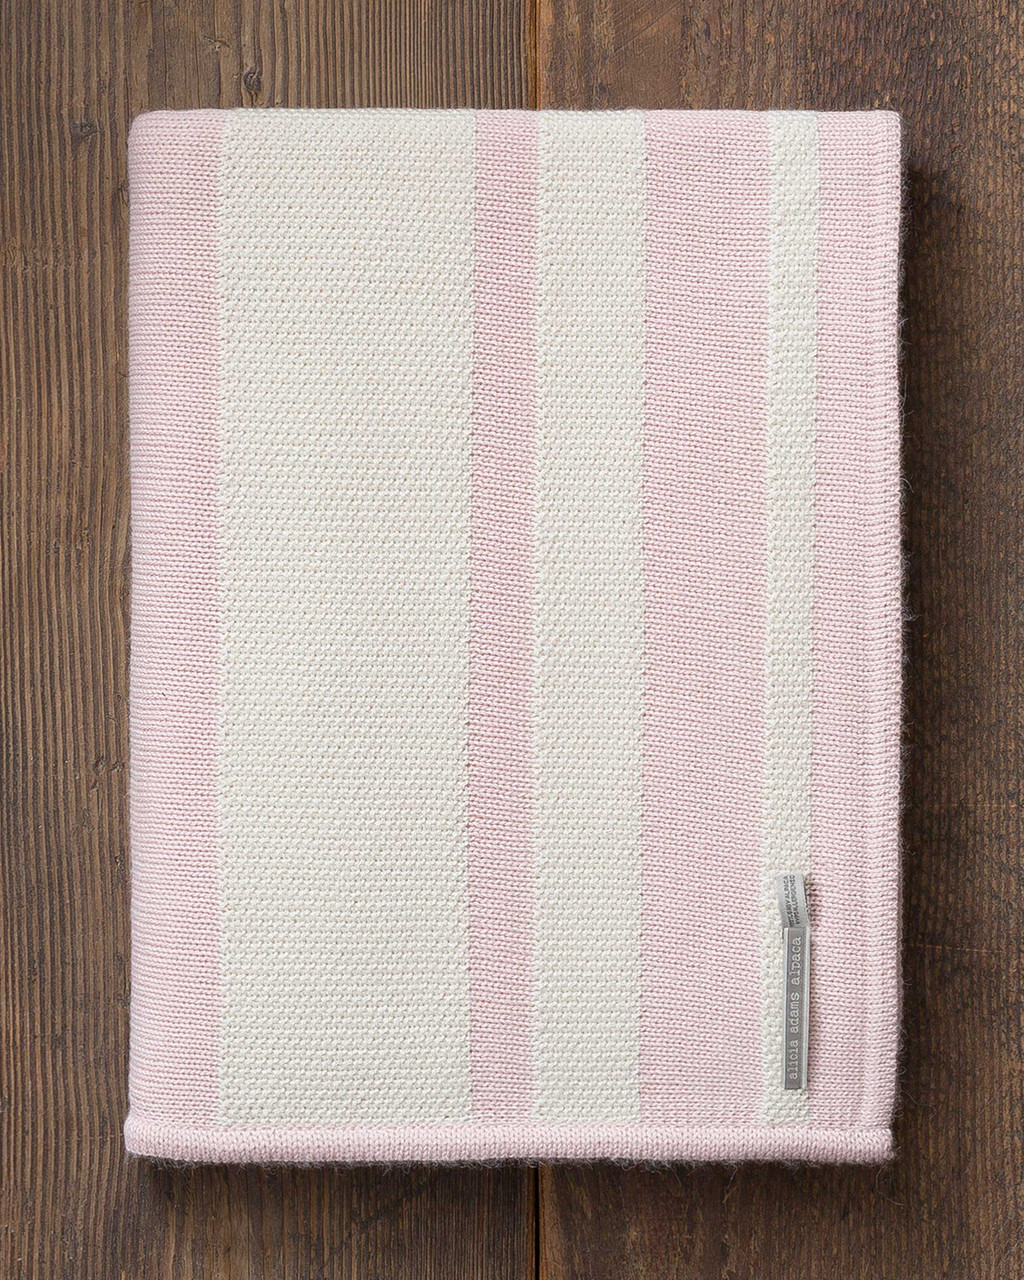 Alicia Adams Alpaca Malibu Throw, lightweight alpaca throw blanket, alpaca throw, alpaca vs cashmere, ivory and pink powder striped alpaca throw